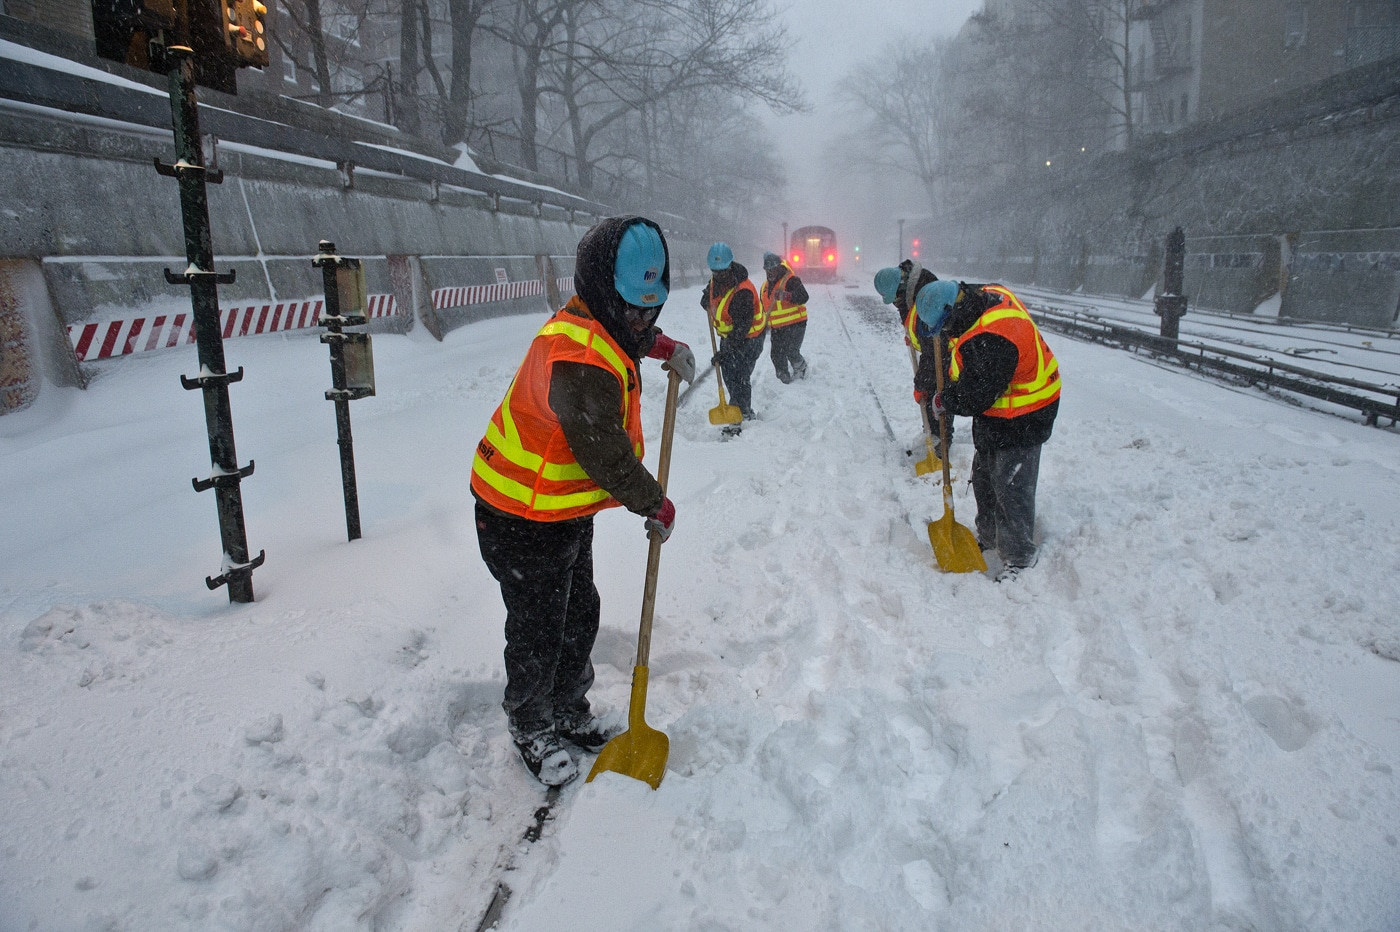 MTA New York City Transit battled the blizzard as crews cleared snow along the Q line in Brooklyn on Saturday, January 23, 2016.